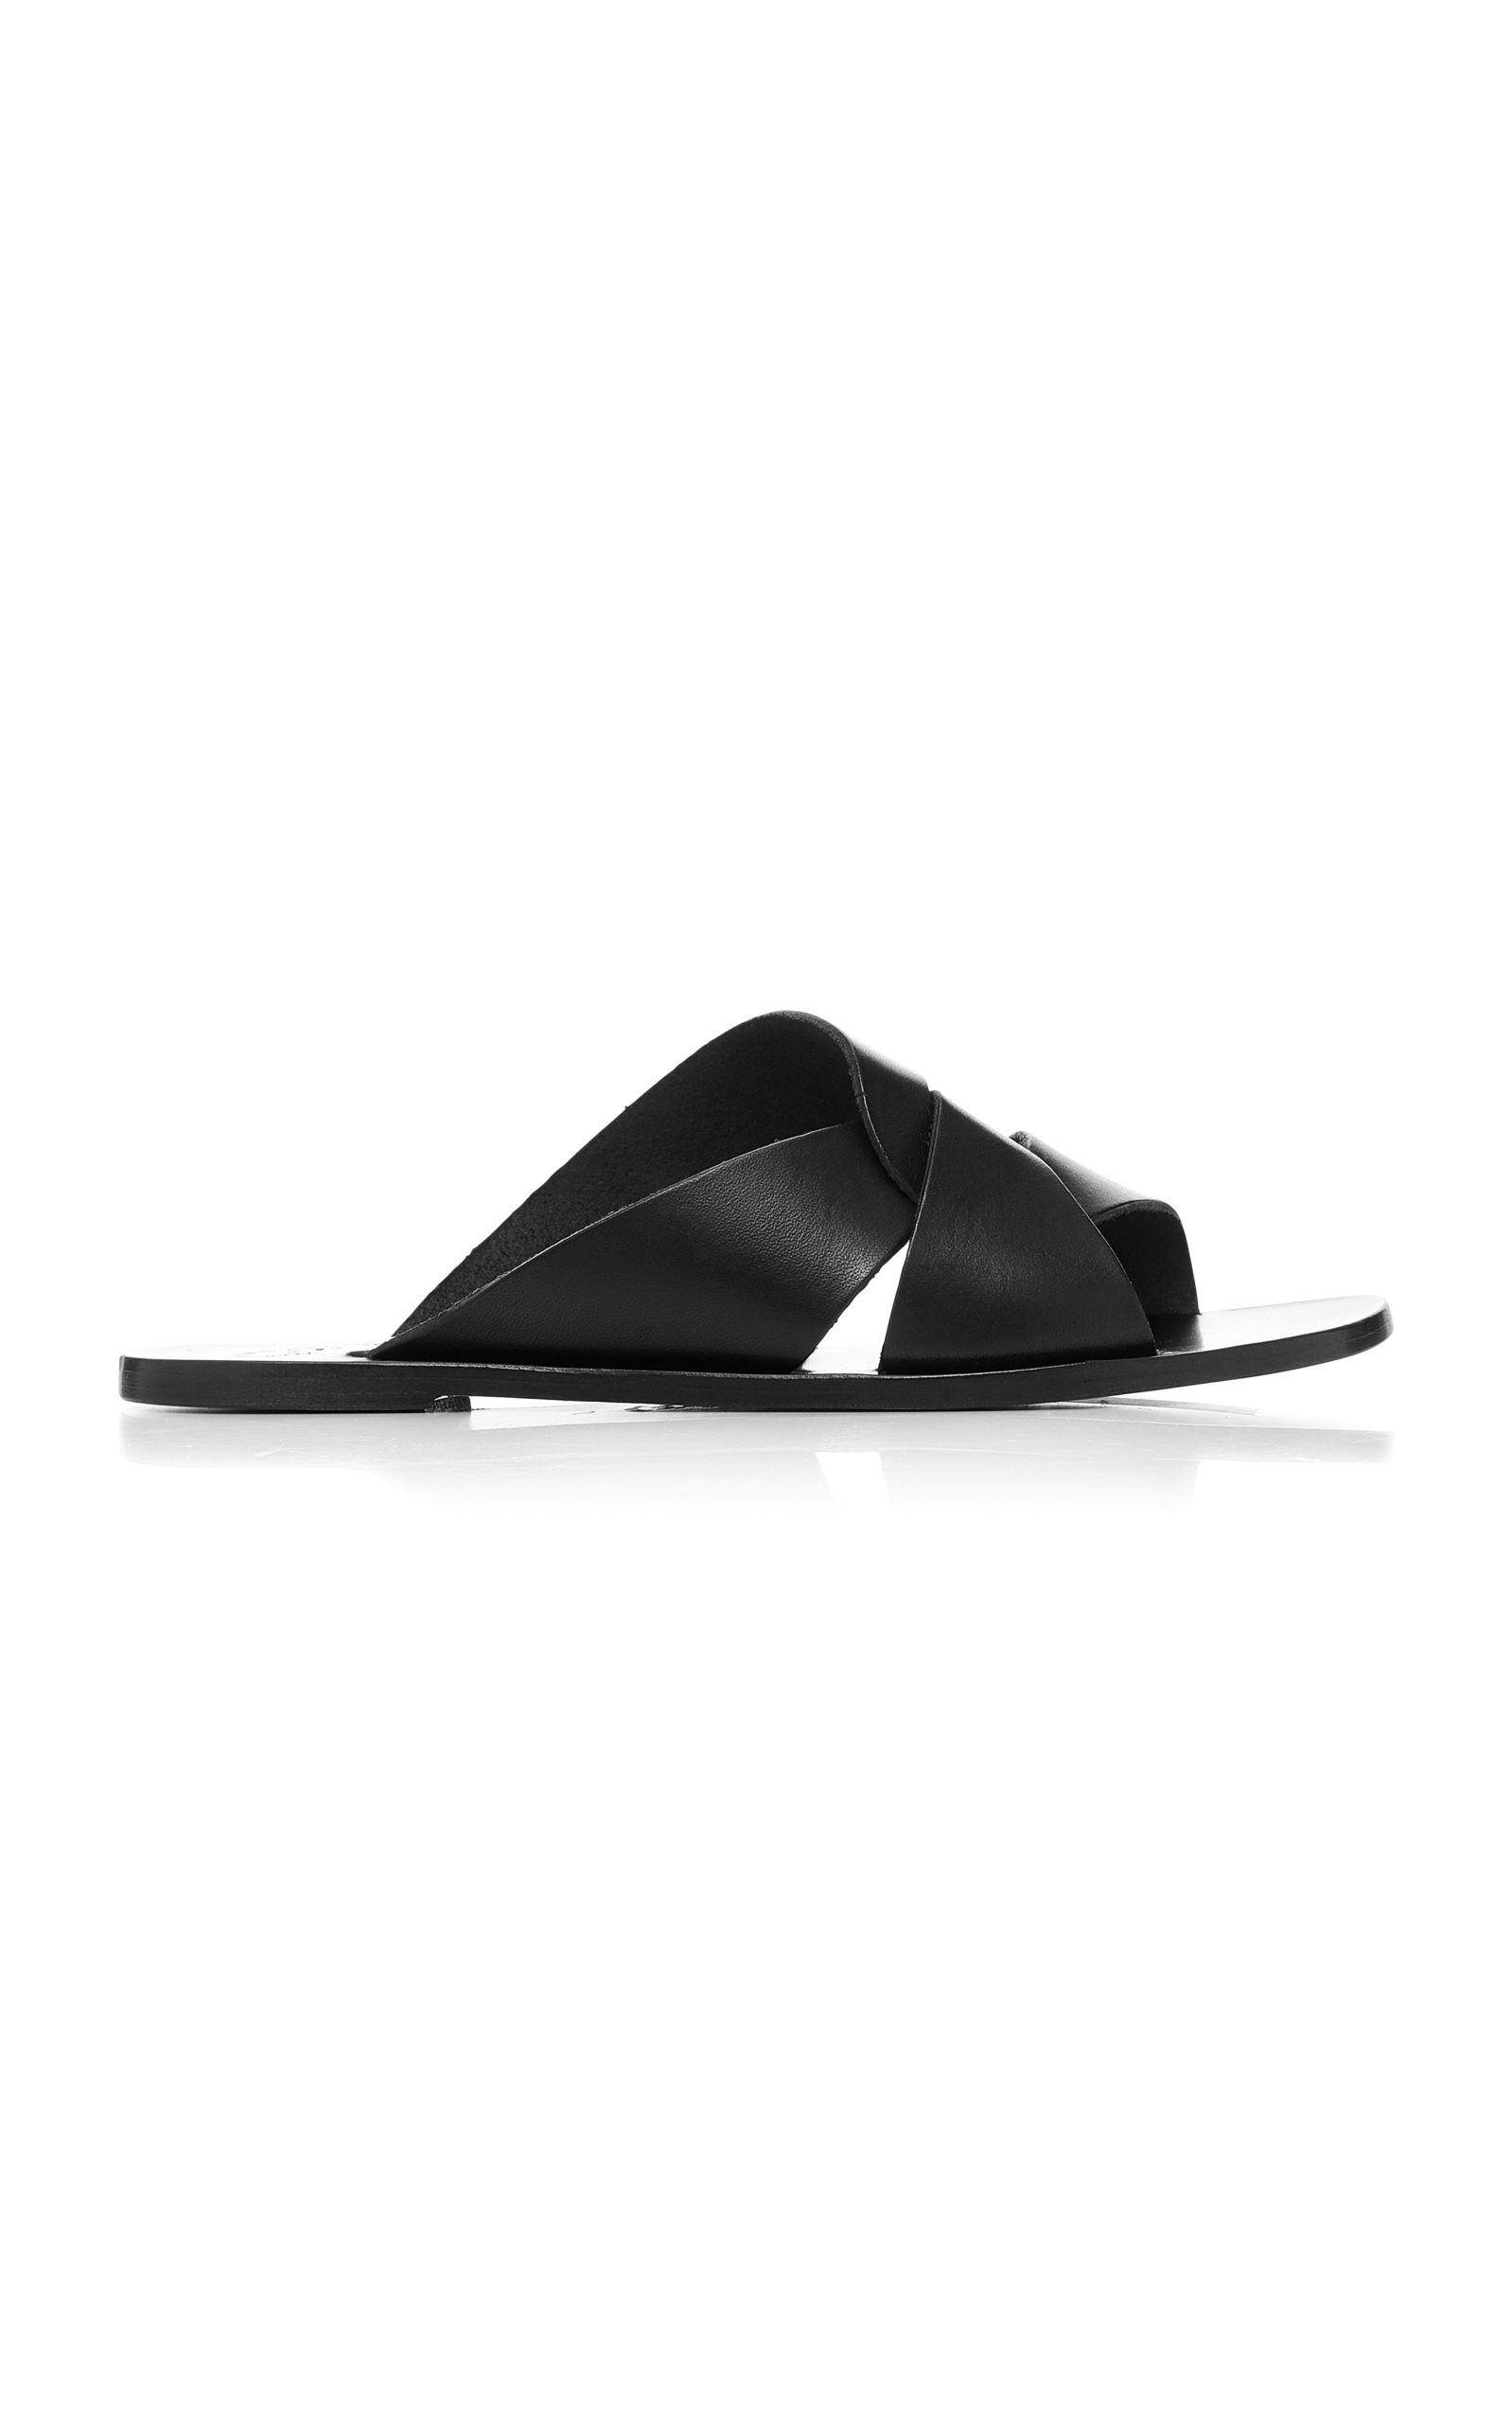 original for sale free shipping affordable Atp Atelier black allai leather sandals clearance newest discount cheap Ho206Qt0